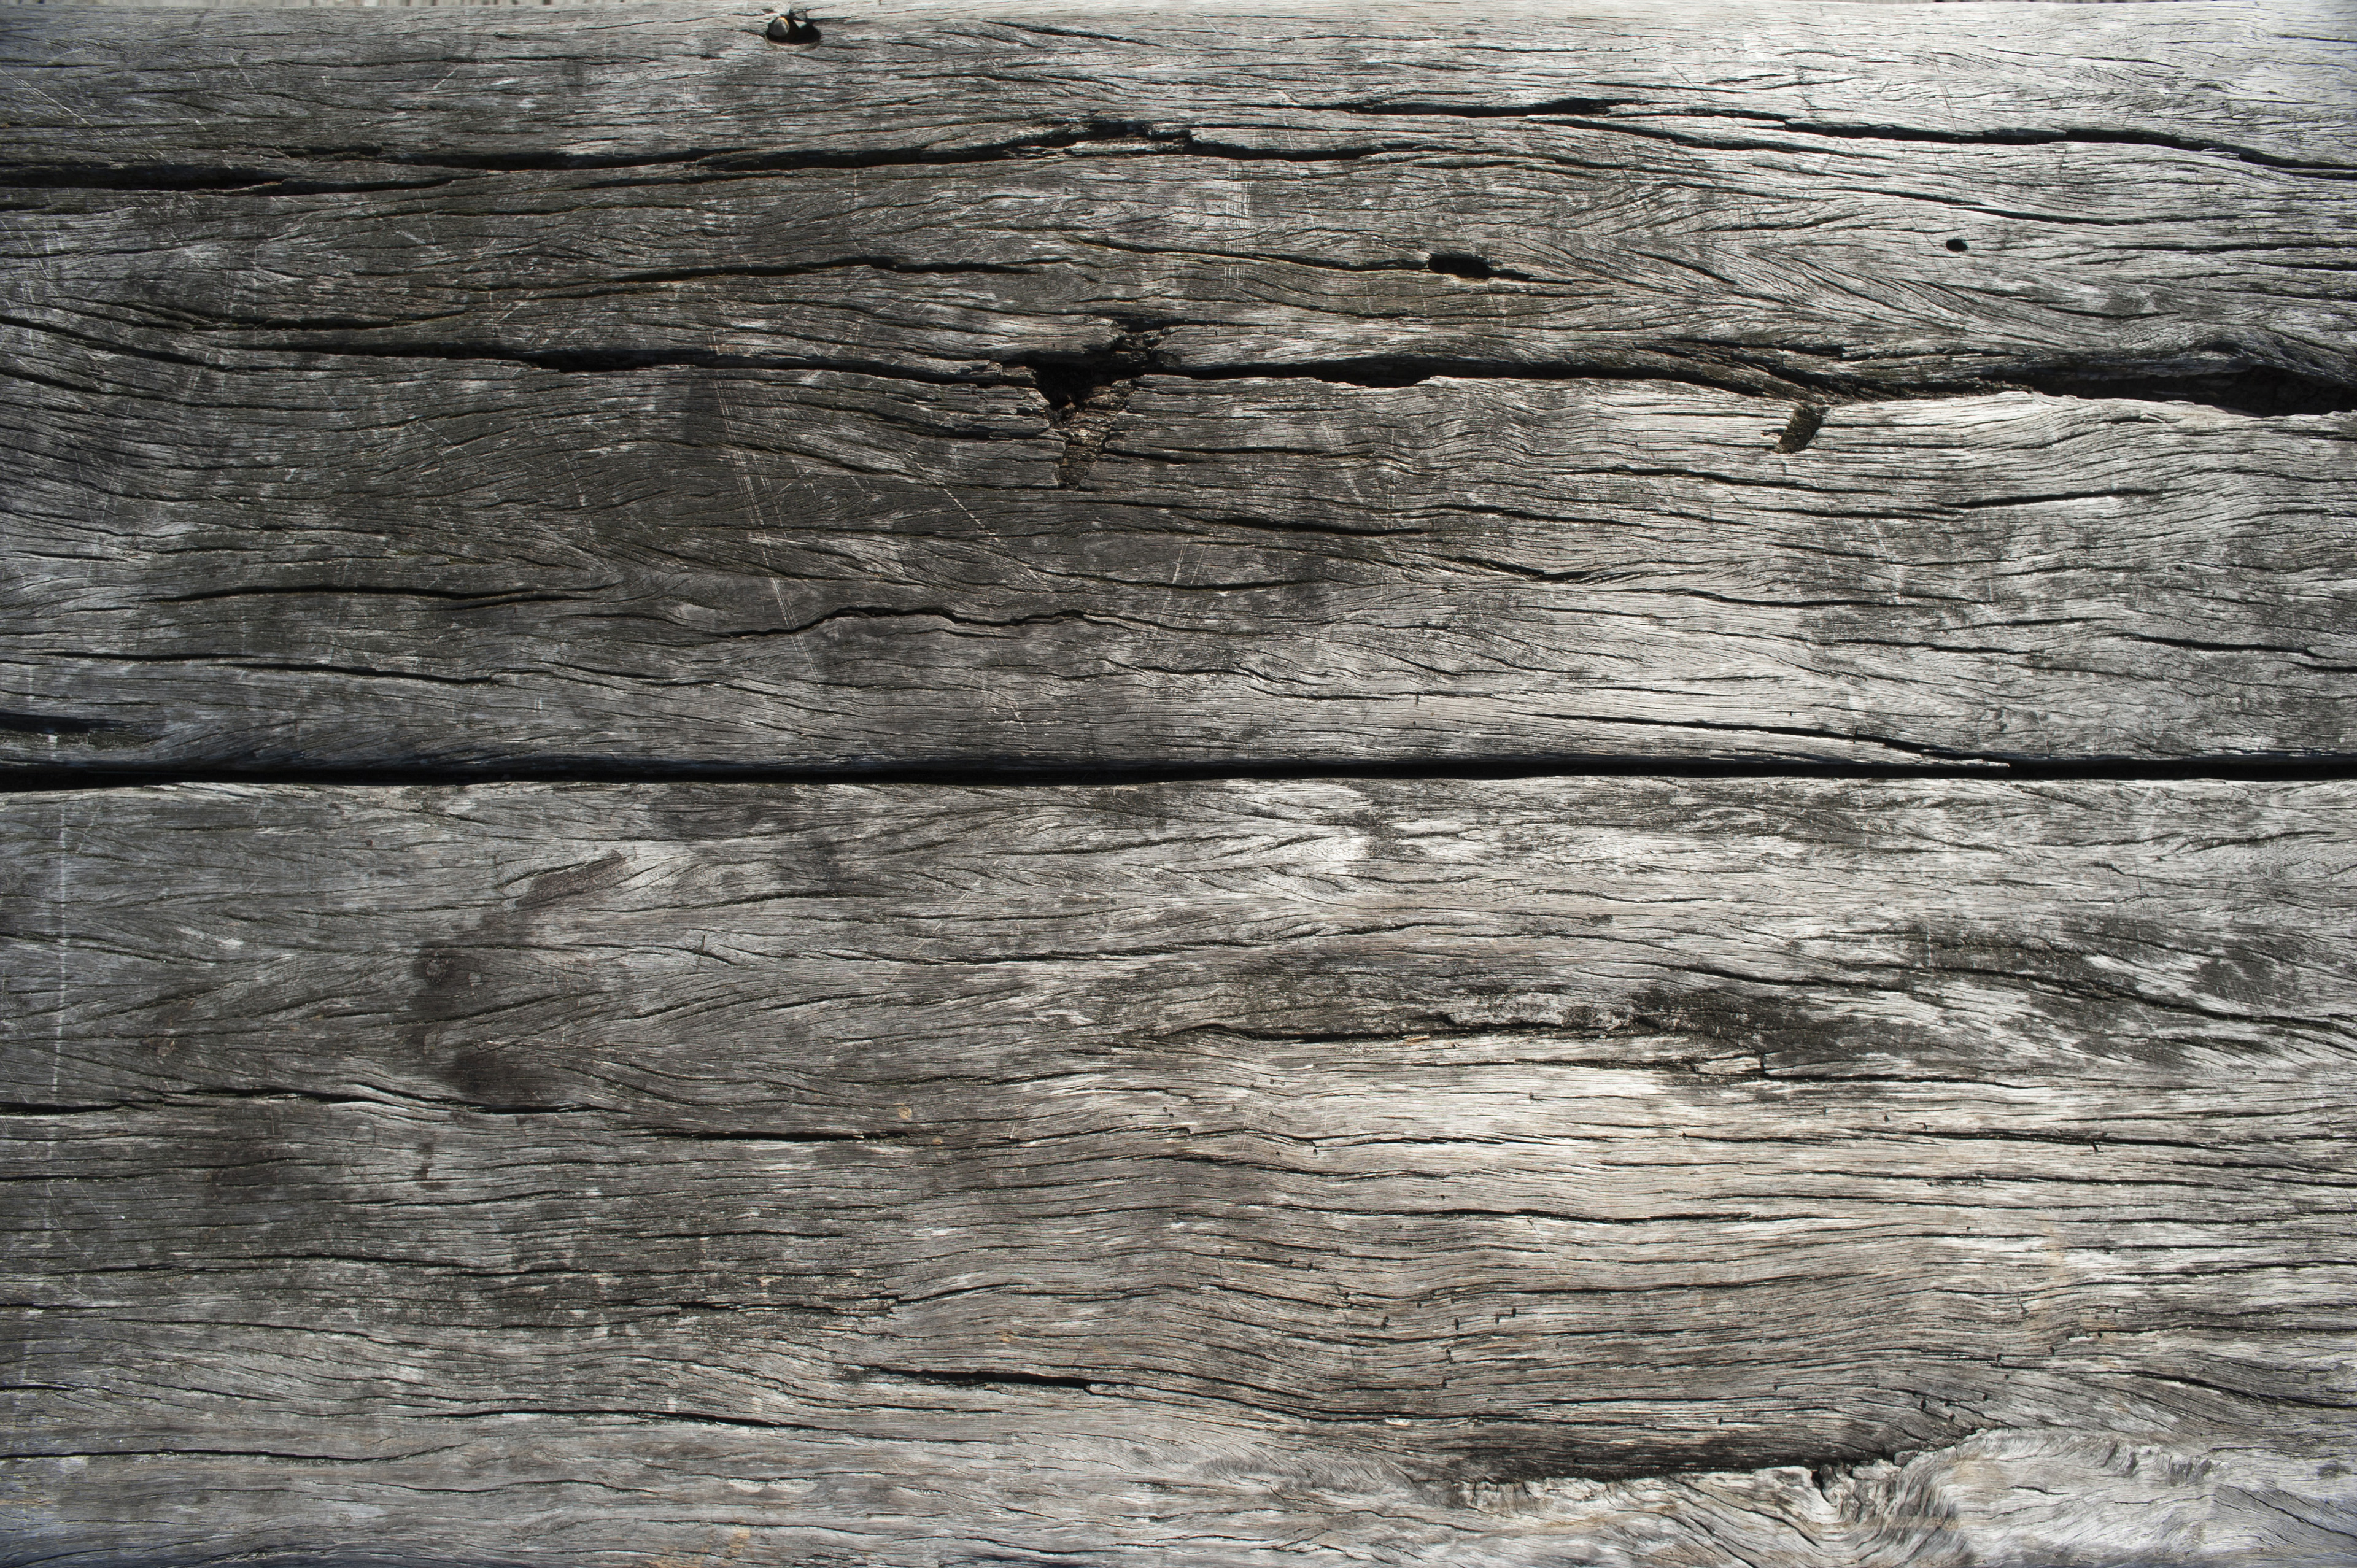 Old wooden surface photo